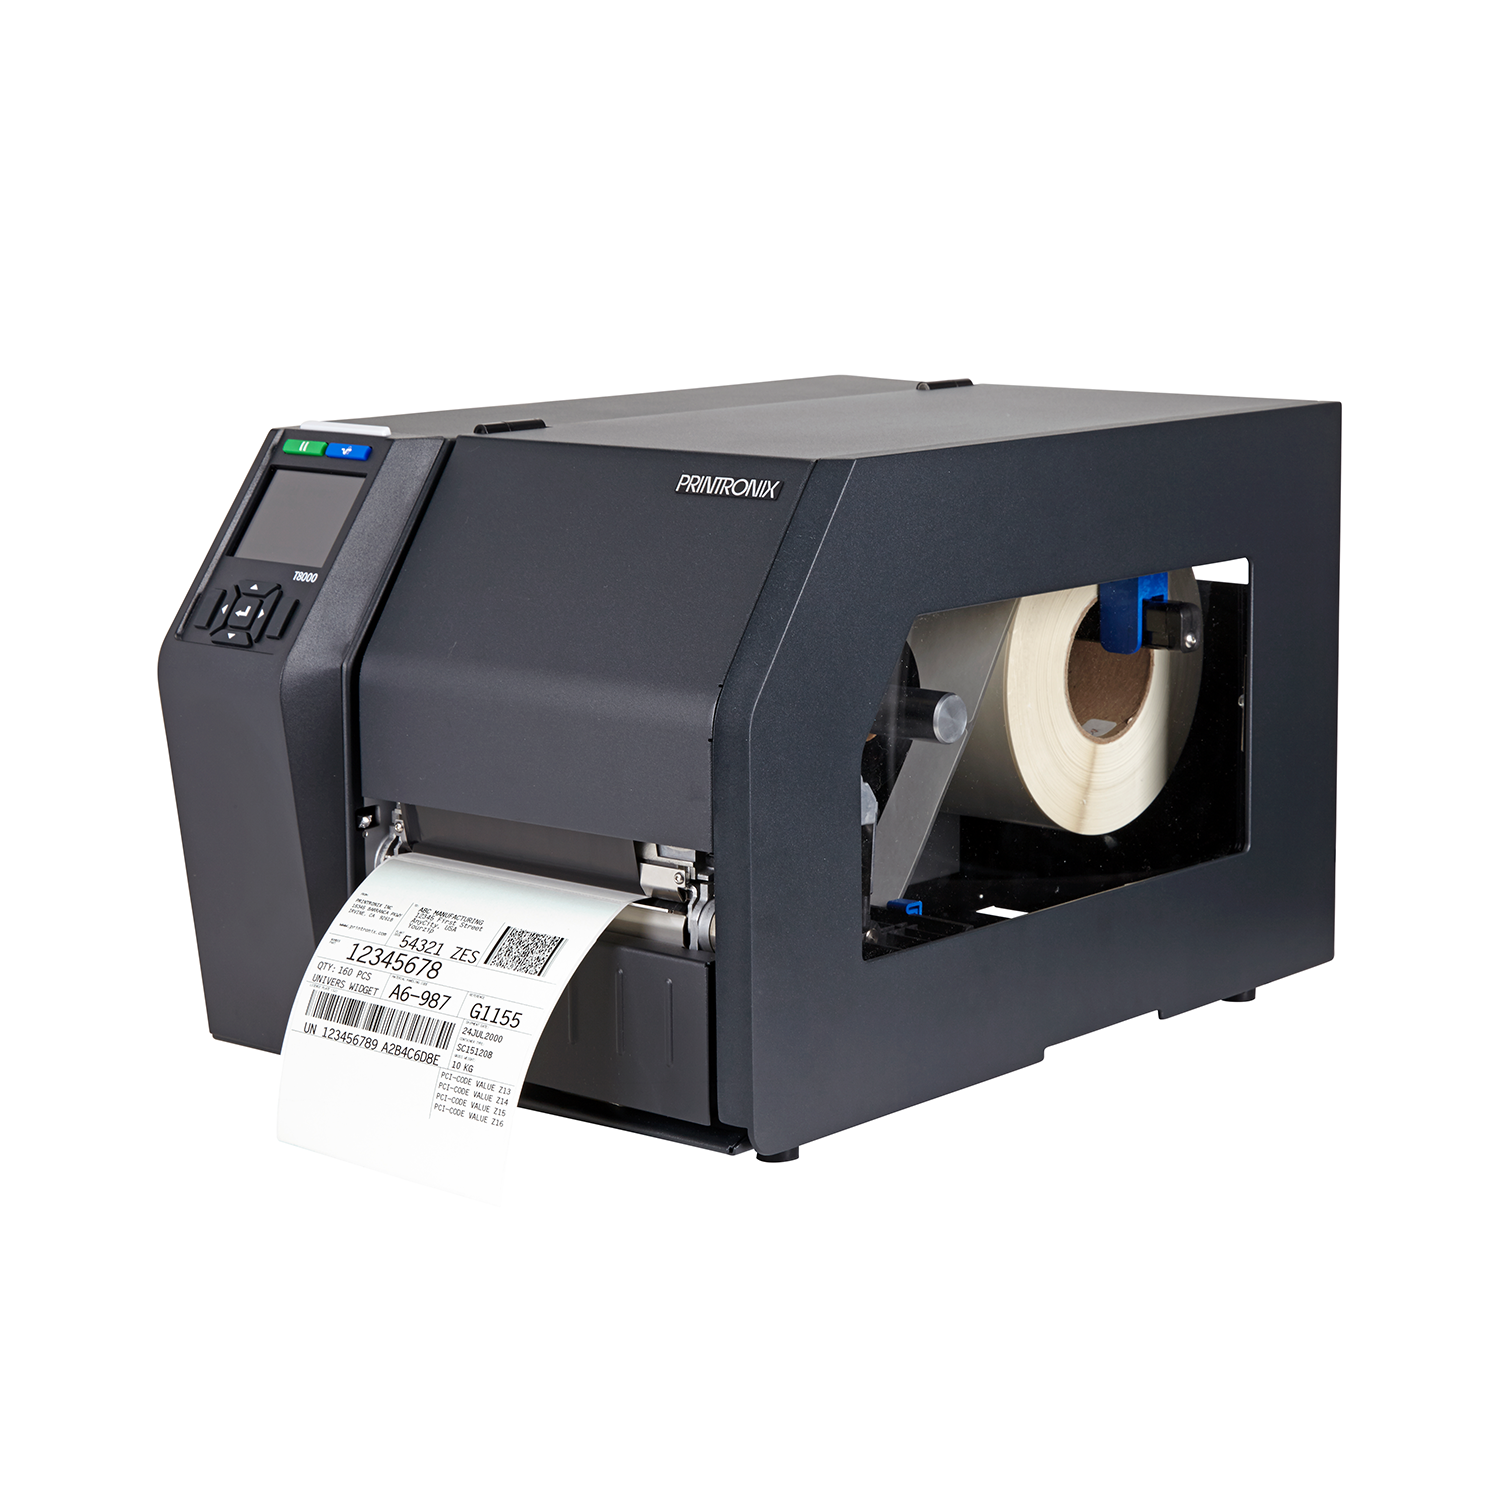 Printronix Auto ID T8000 Industrial RFID Printer